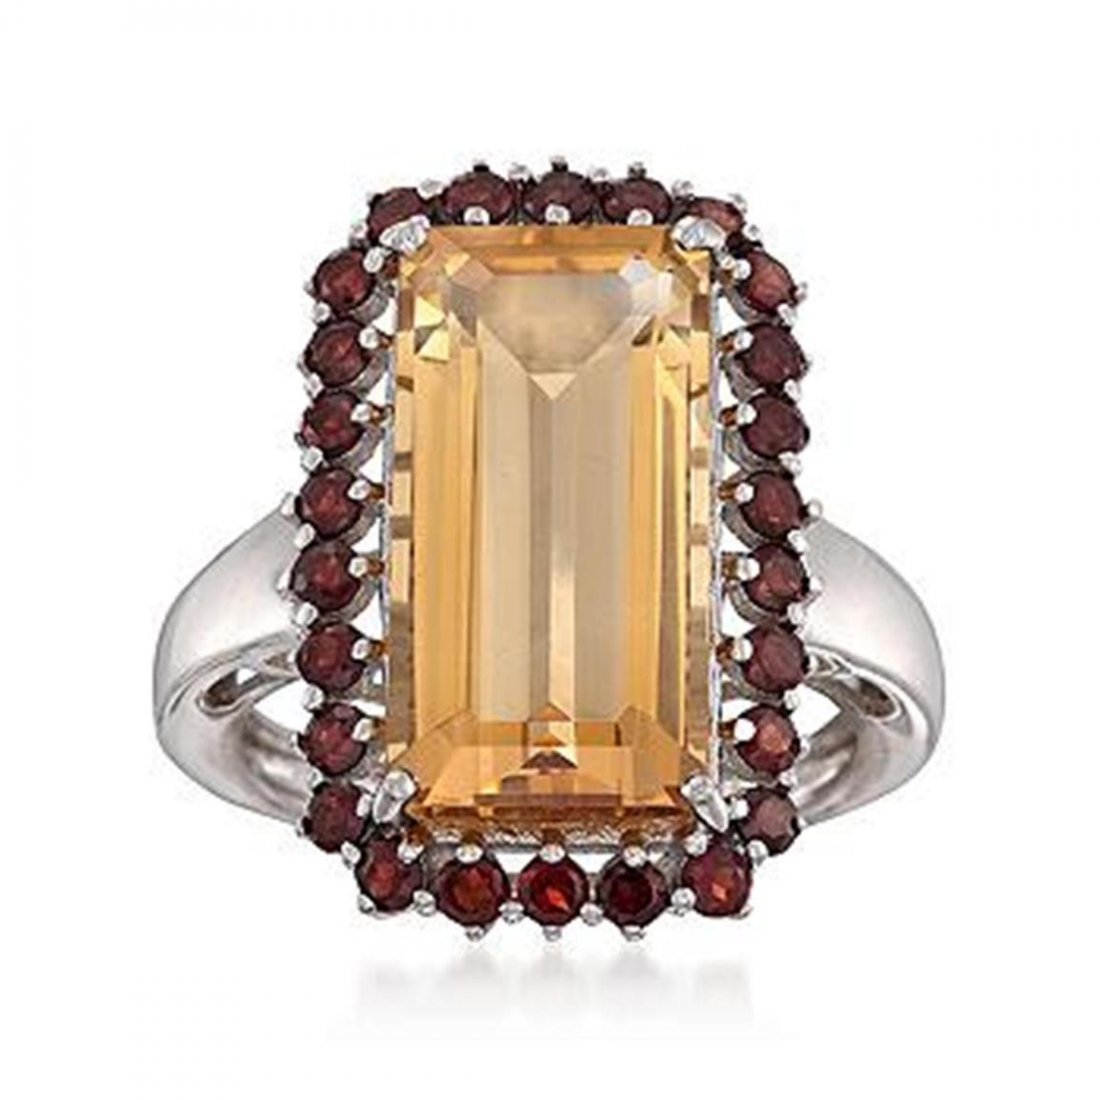 8.55 ct. t.w. Citrine and Garnet Ring in Sterling